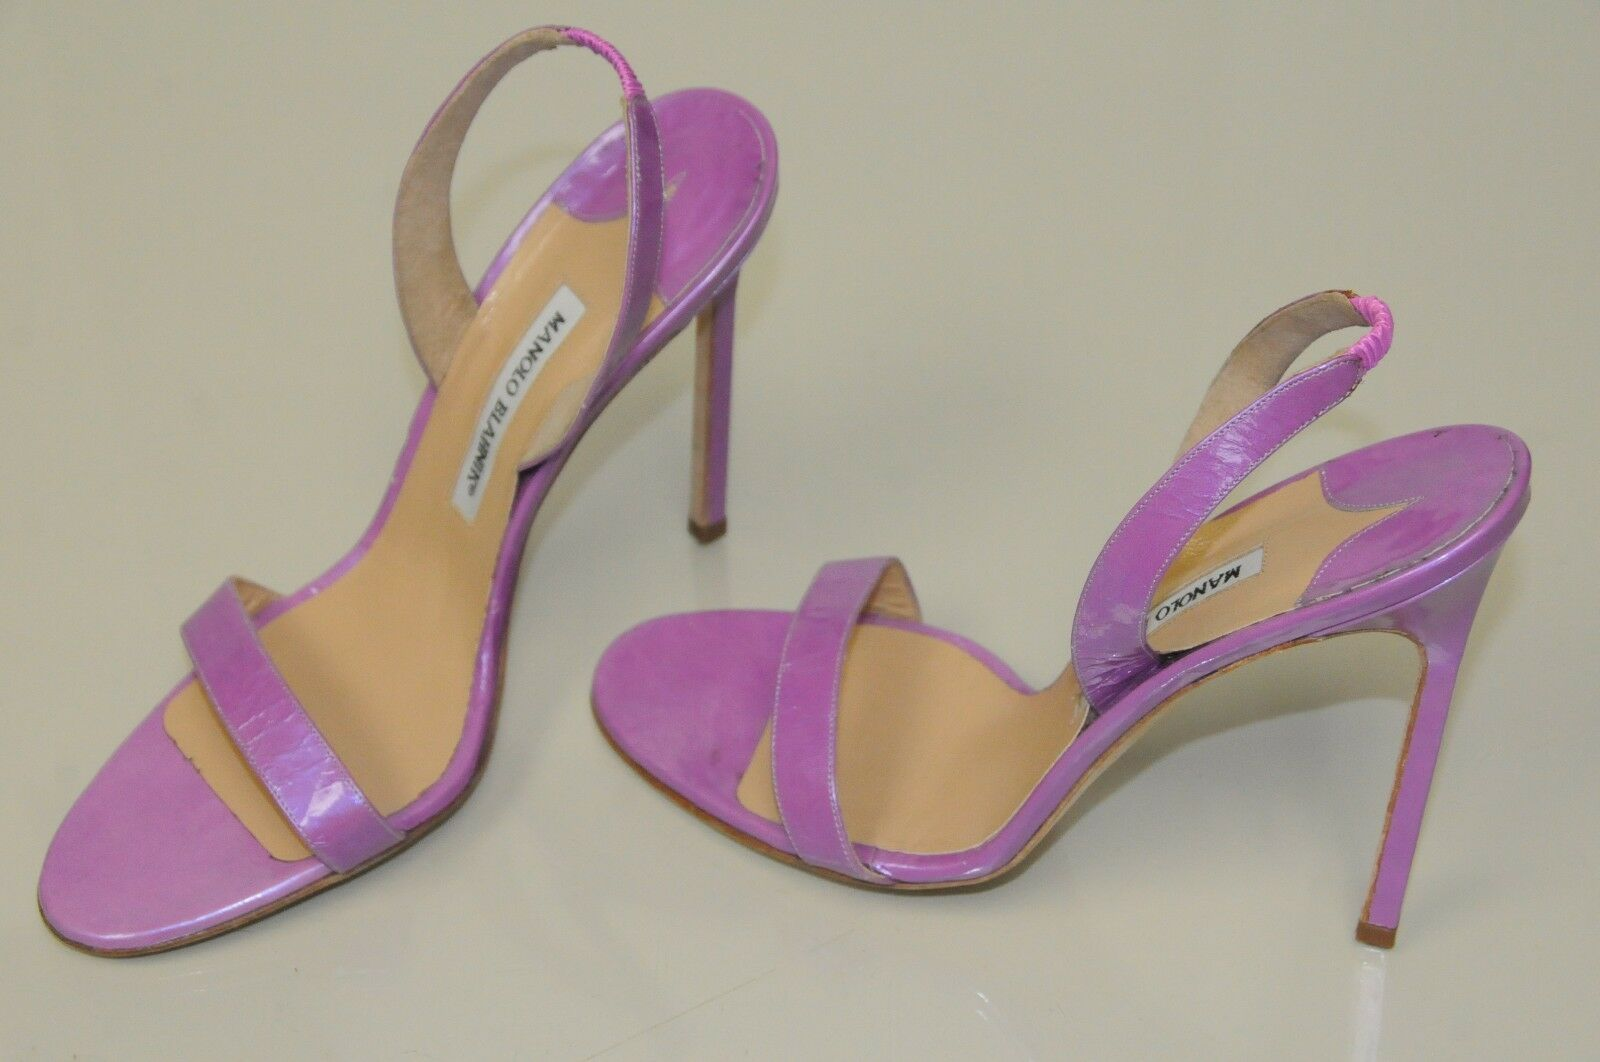 New Manolo Blahnik Purple Patent Leather Strappy Sandals shoes BB  Heels 40 40.5